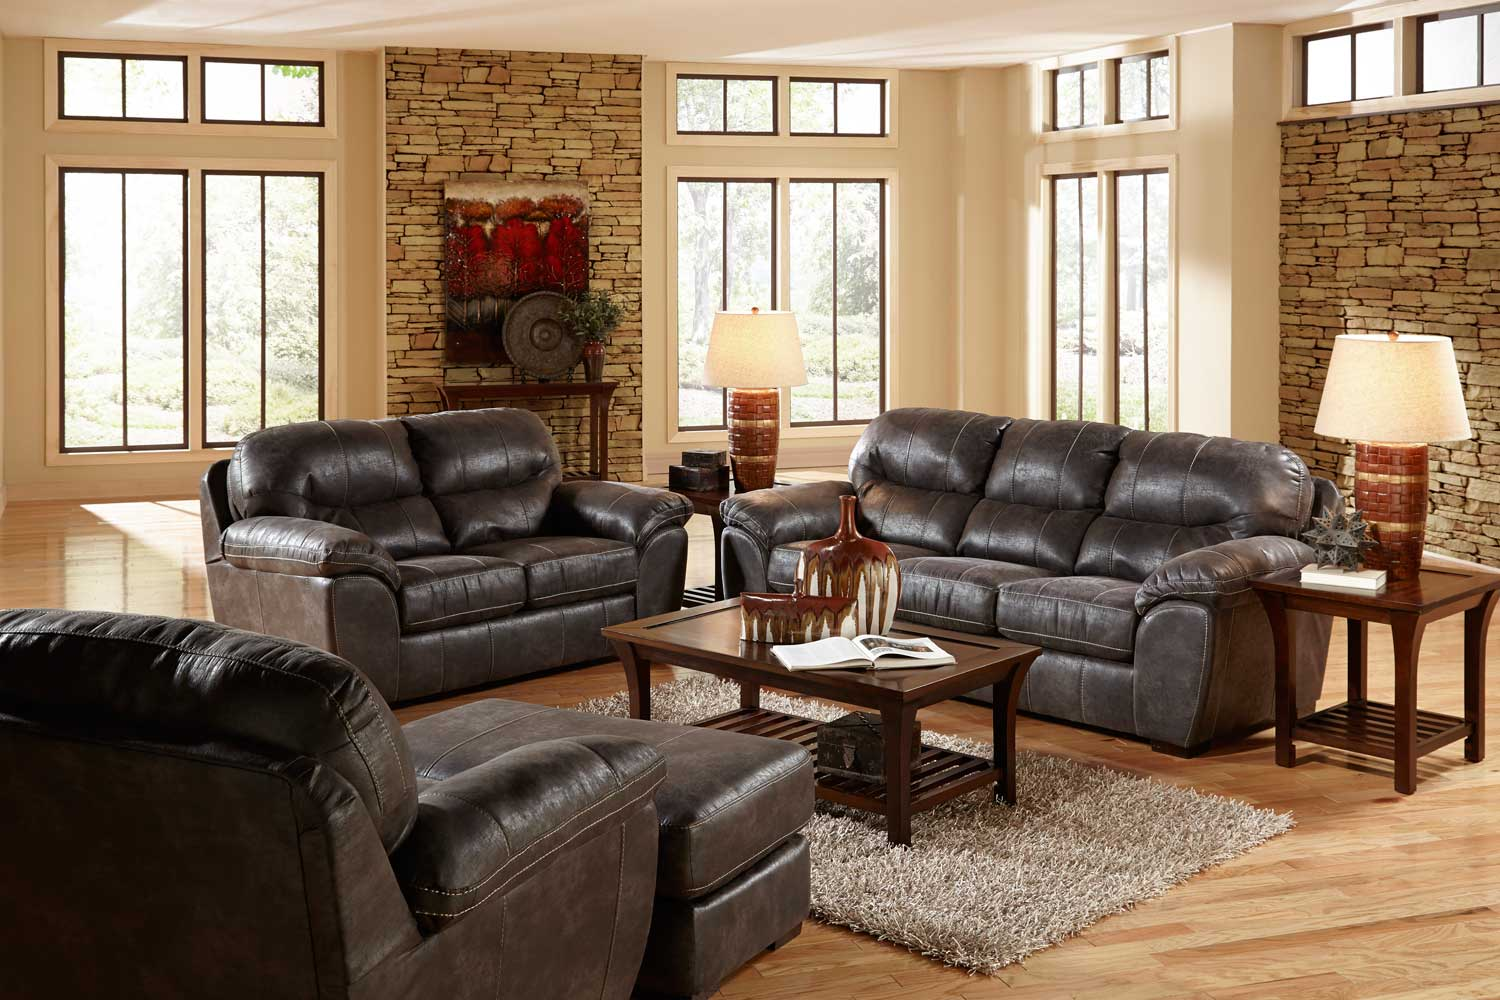 Jackson Grant Bonded Leather Sofa Set   Steel